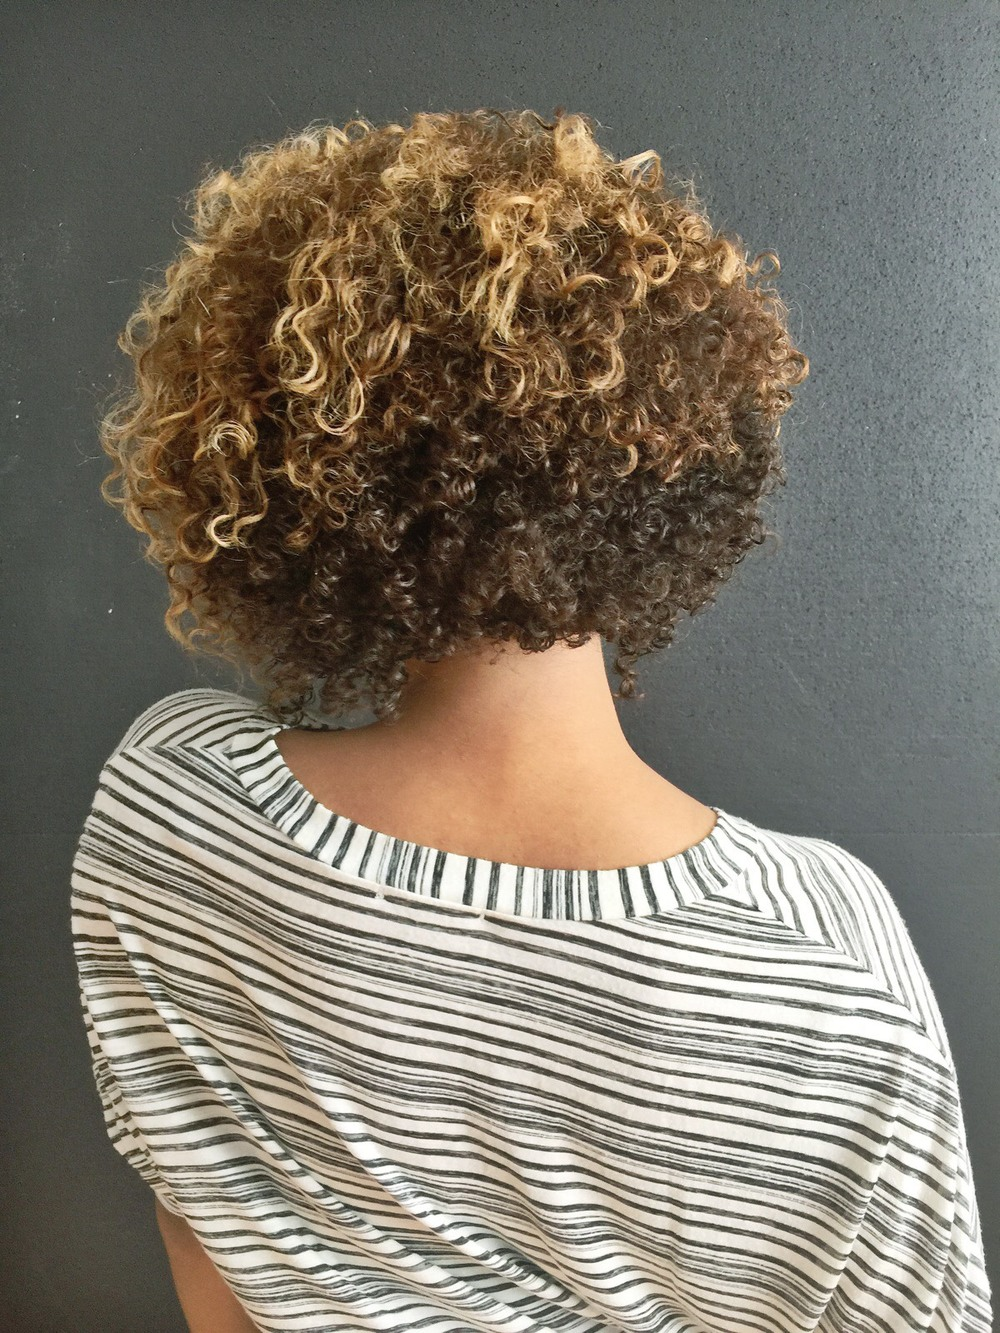 Image of hair after using the Devacurl SuperCream Coconut Curl Styler from the Curl Connoisseur Blog